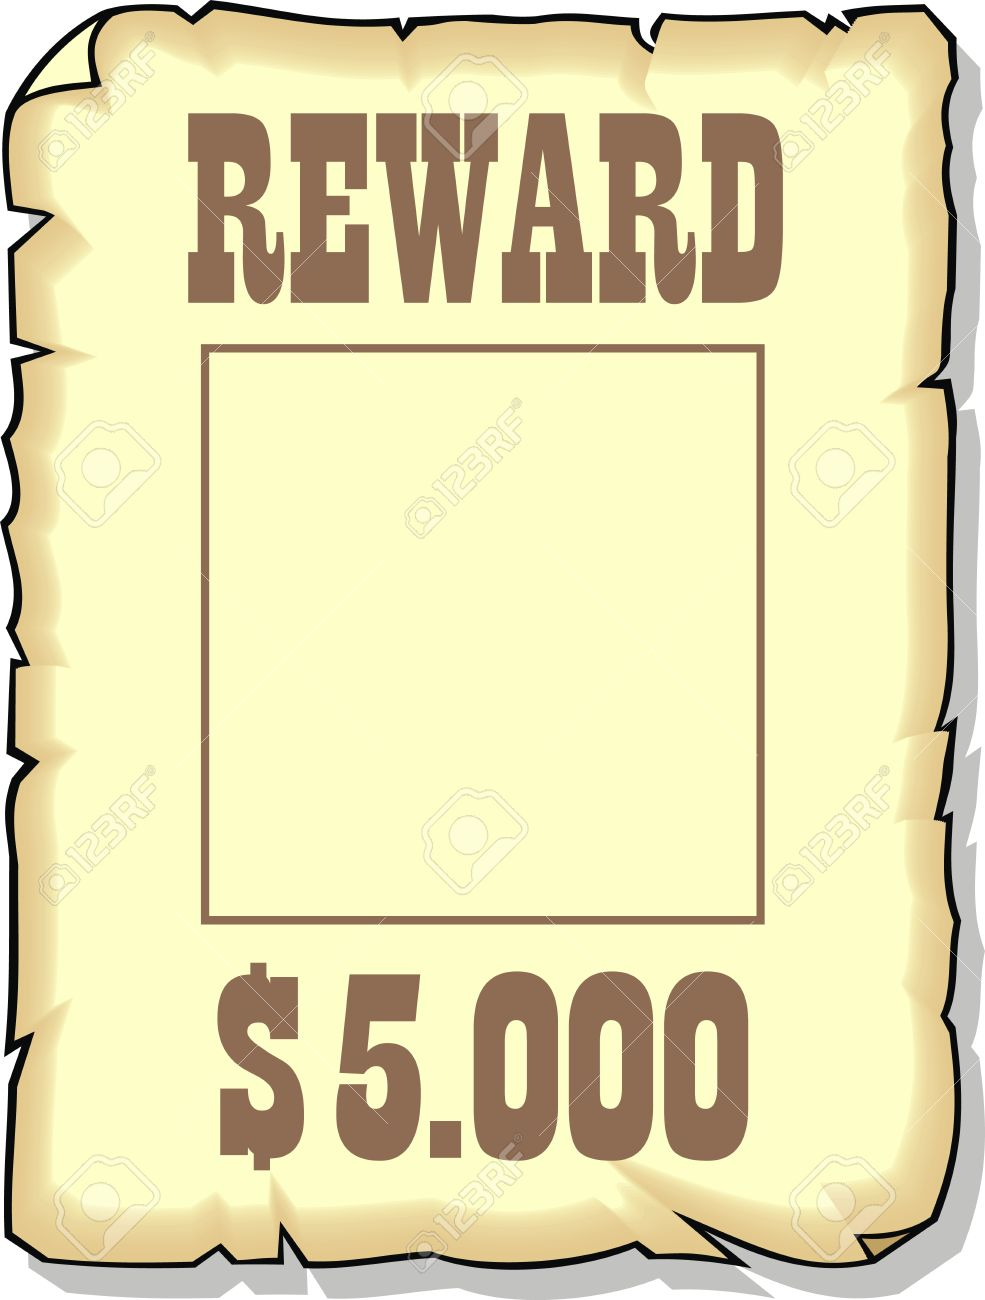 sepia reward 5000 dollars as nice background royalty free cliparts rh 123rf com wanted poster clipart free wanted poster border clip art